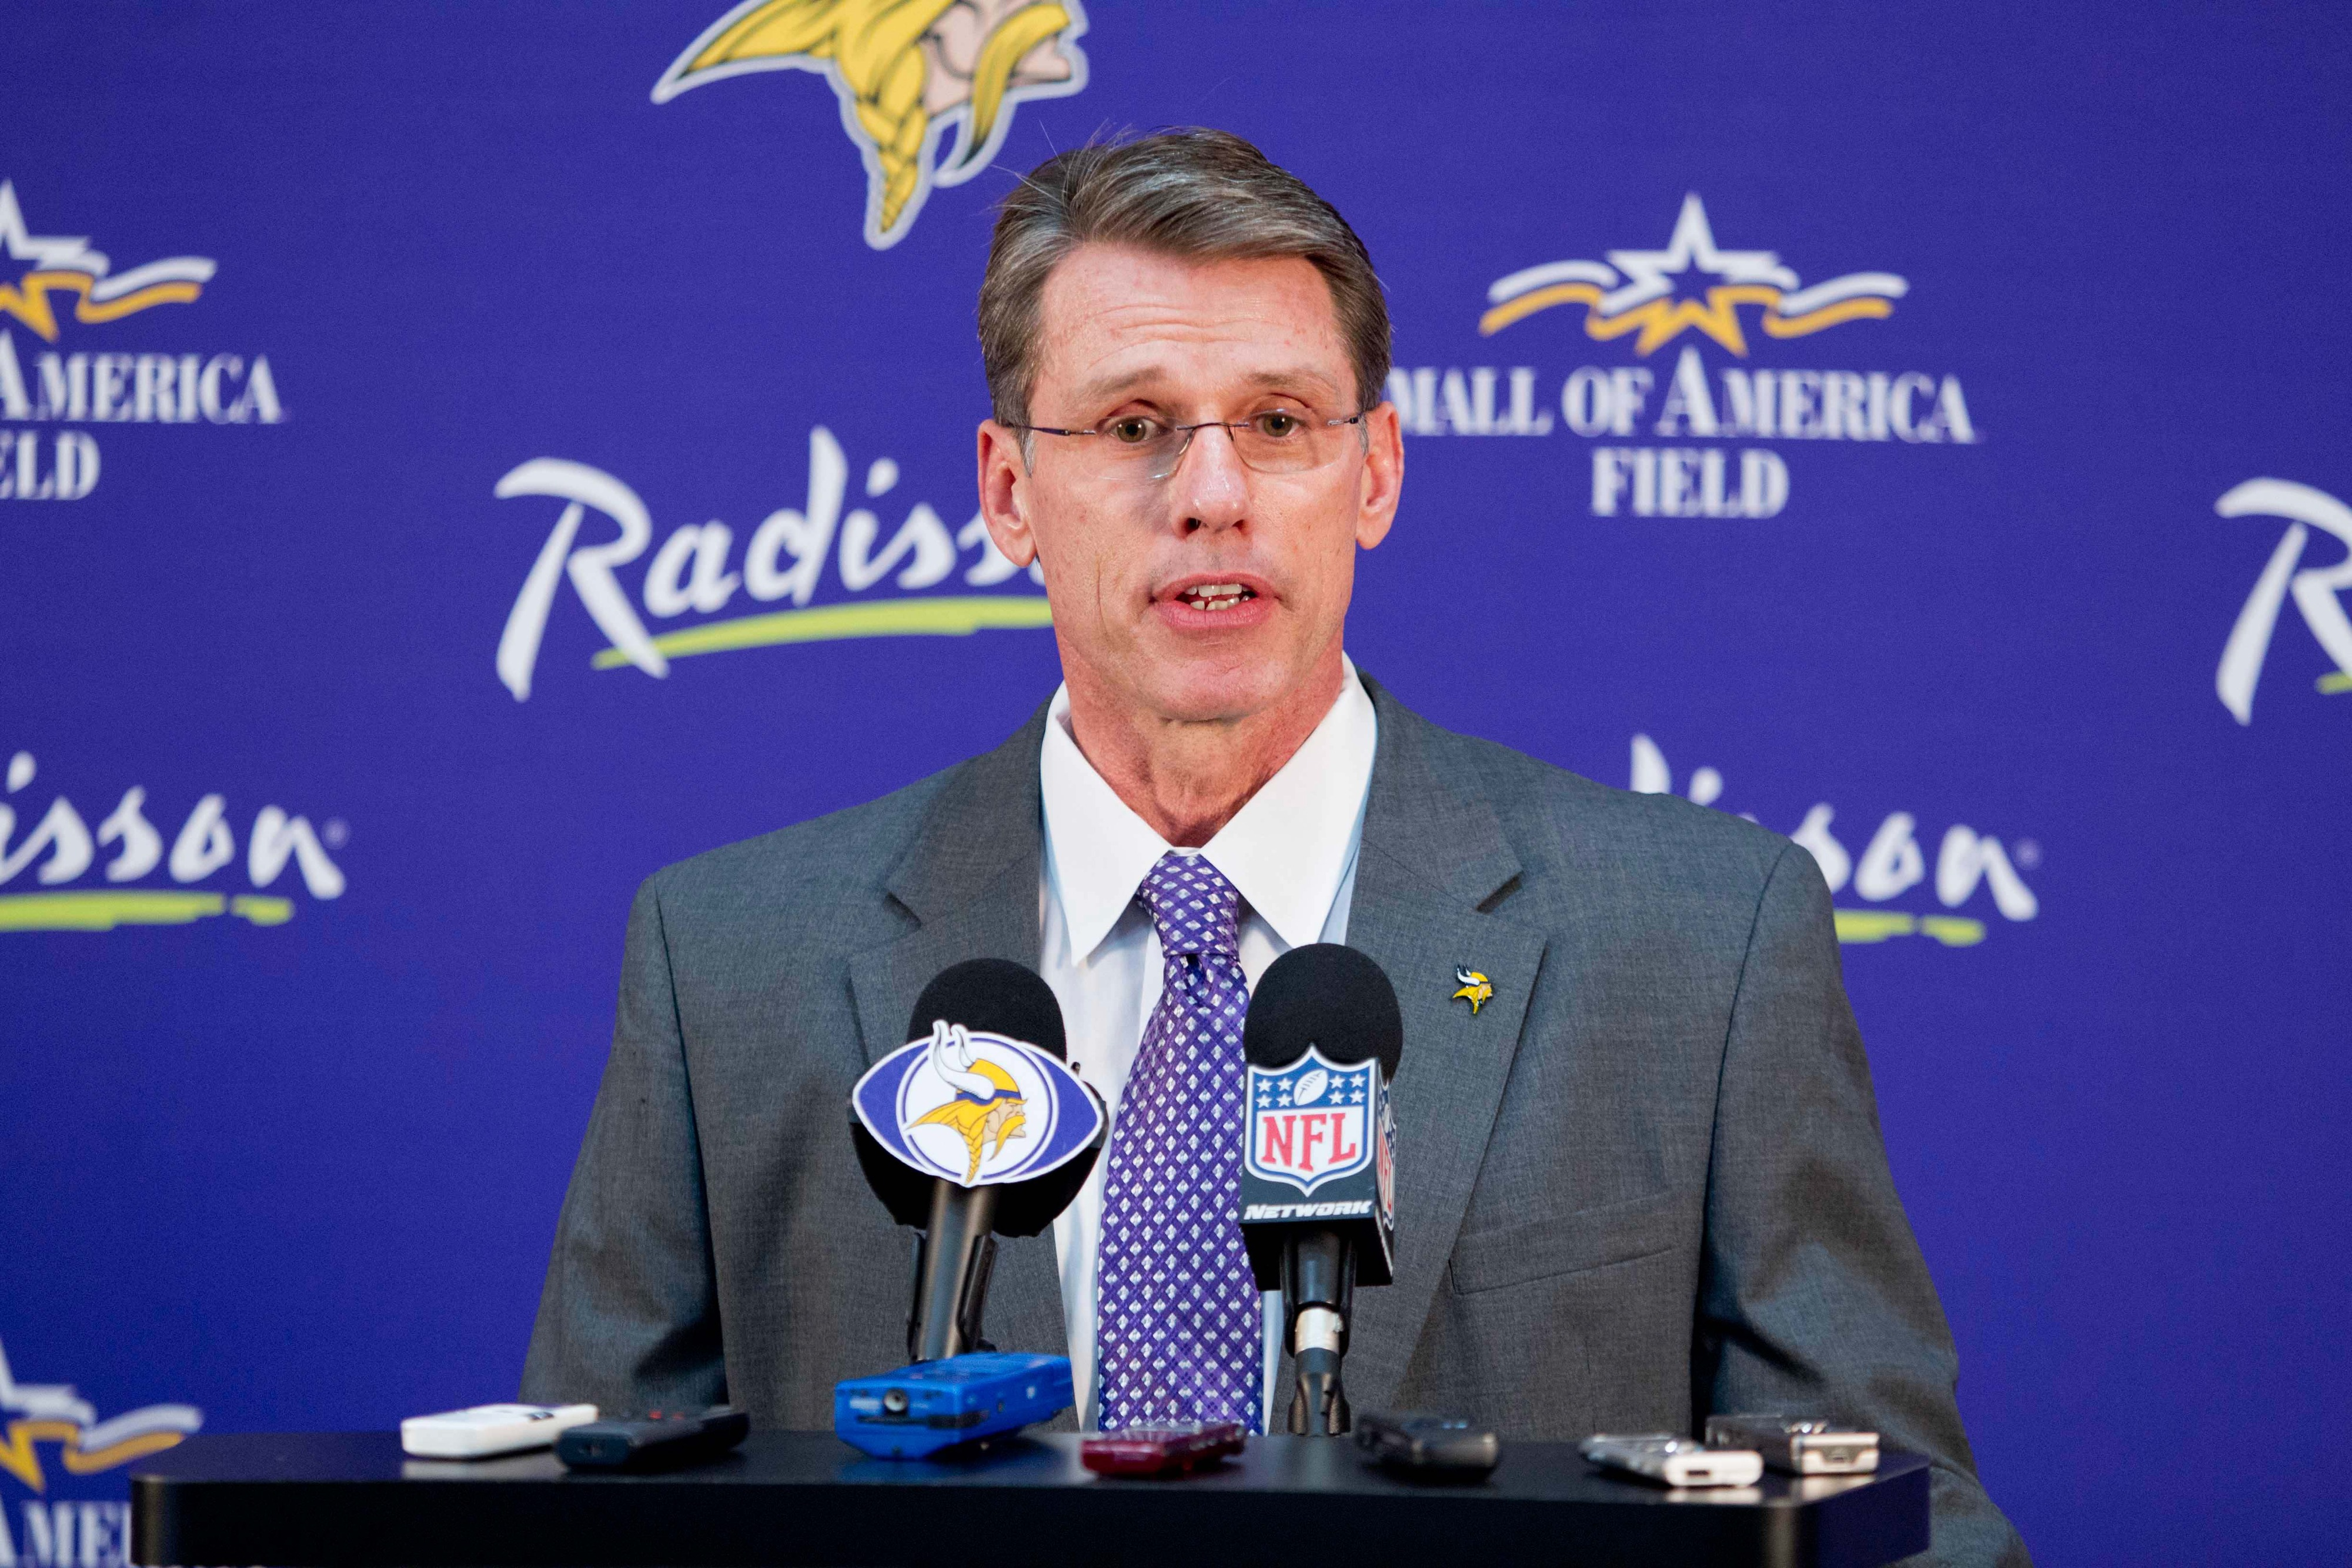 Radisson hotel, who's logo you can see on the banner behind GM Rick Spielman, has suspended their sponsorship of the Vikings